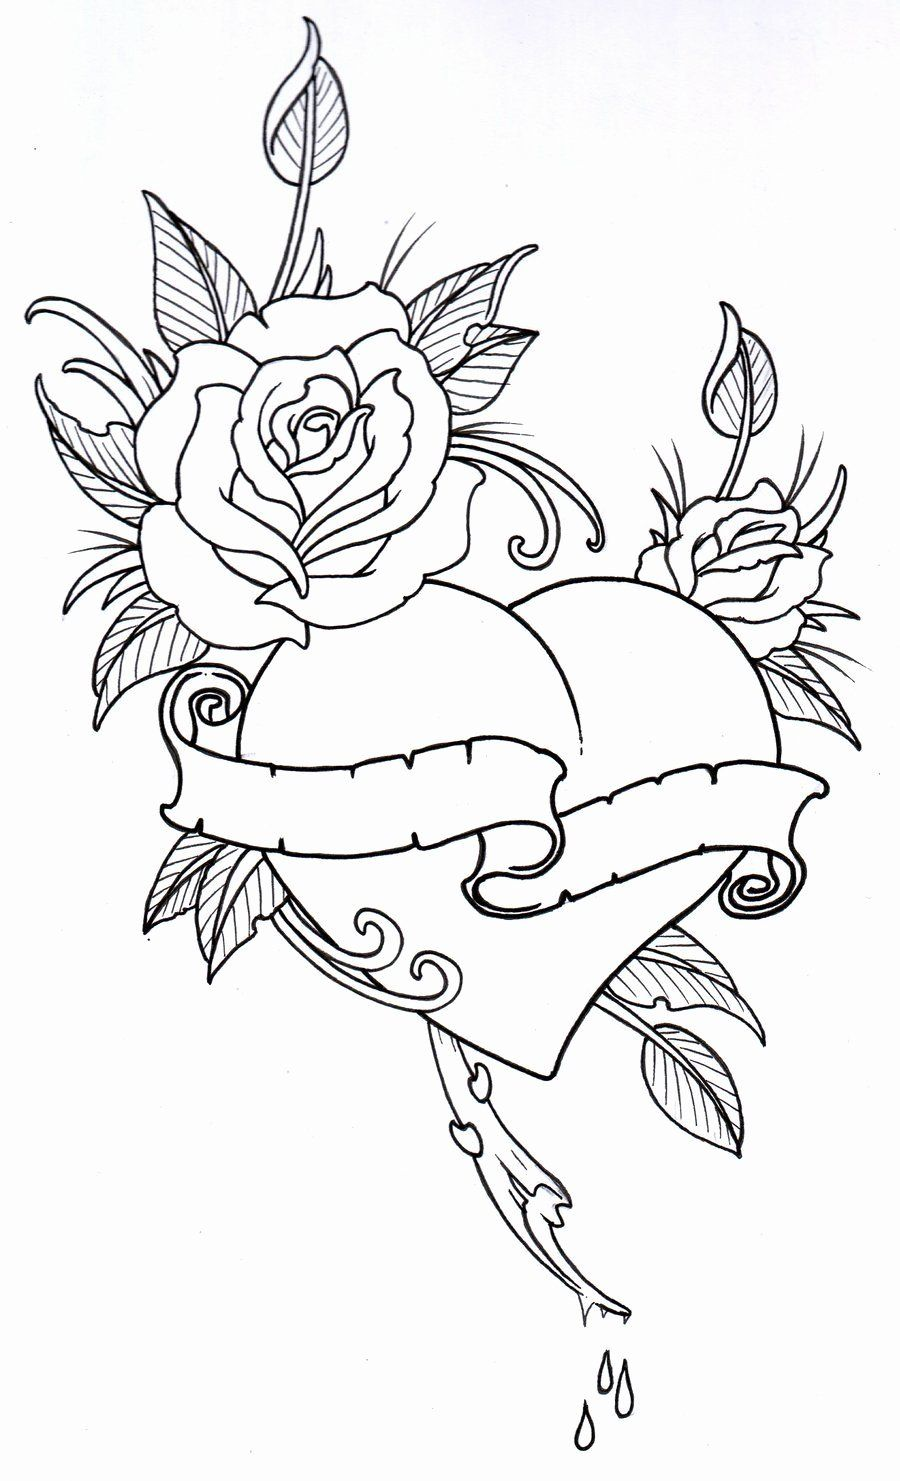 Tattoo Coloring Book Pages Beautiful Roseheart Outline 1 By Vikingtattooviantart On In 2020 Coloring Books Coloring Book Pages Coloring Pages